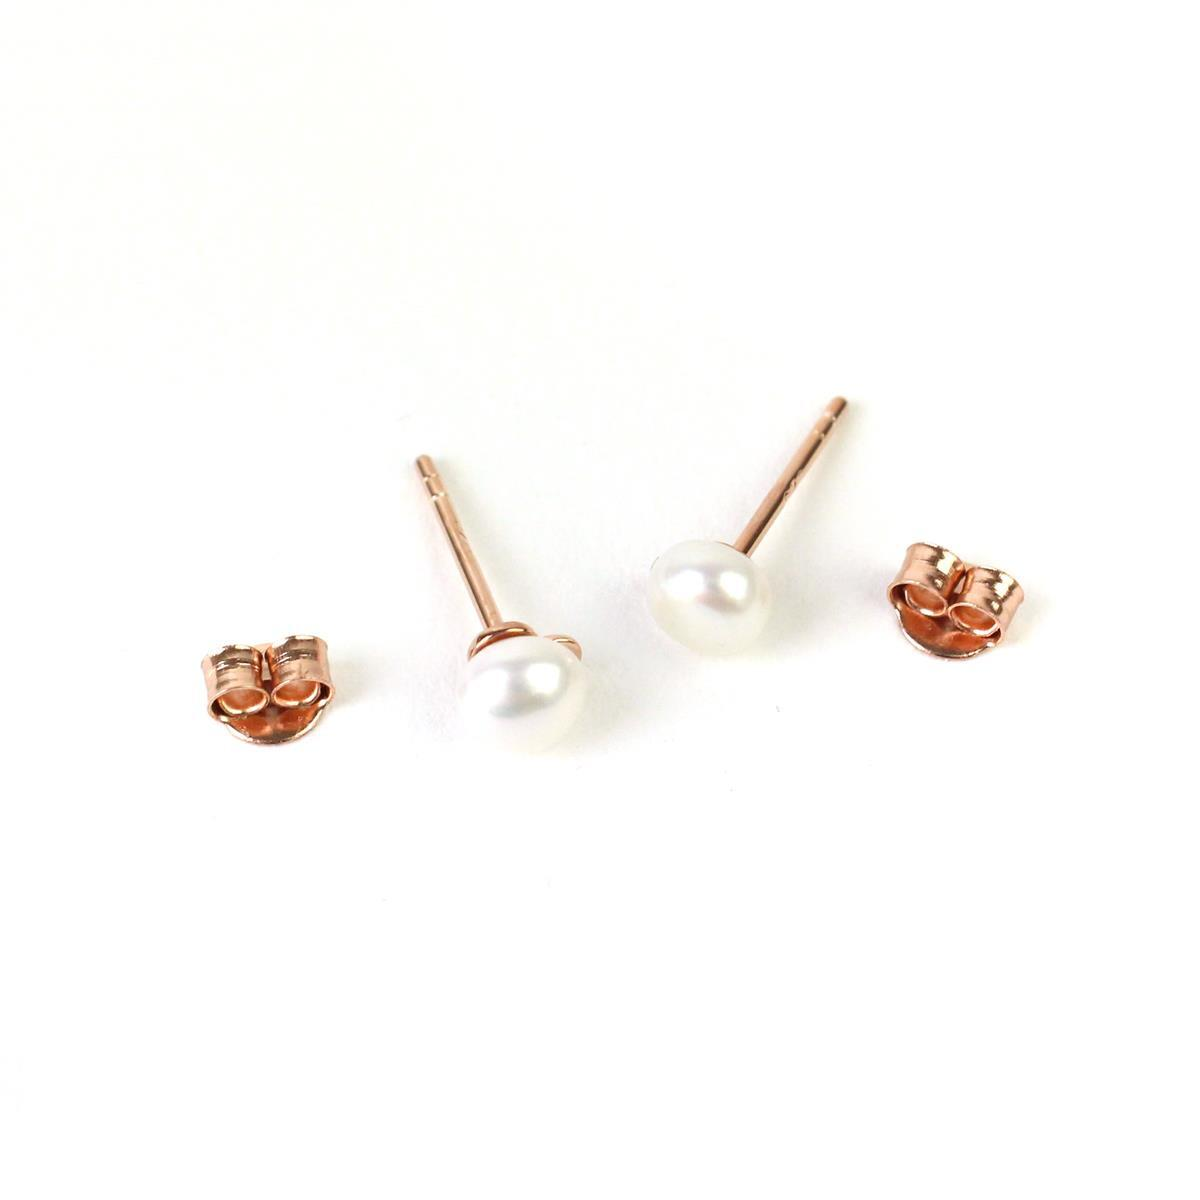 a27c797ee Rose Gold Plated 925 Sterling Silver Freshwater Cultured Pearl Earring  Finding with Butterfly Back 5mm 1 Pair